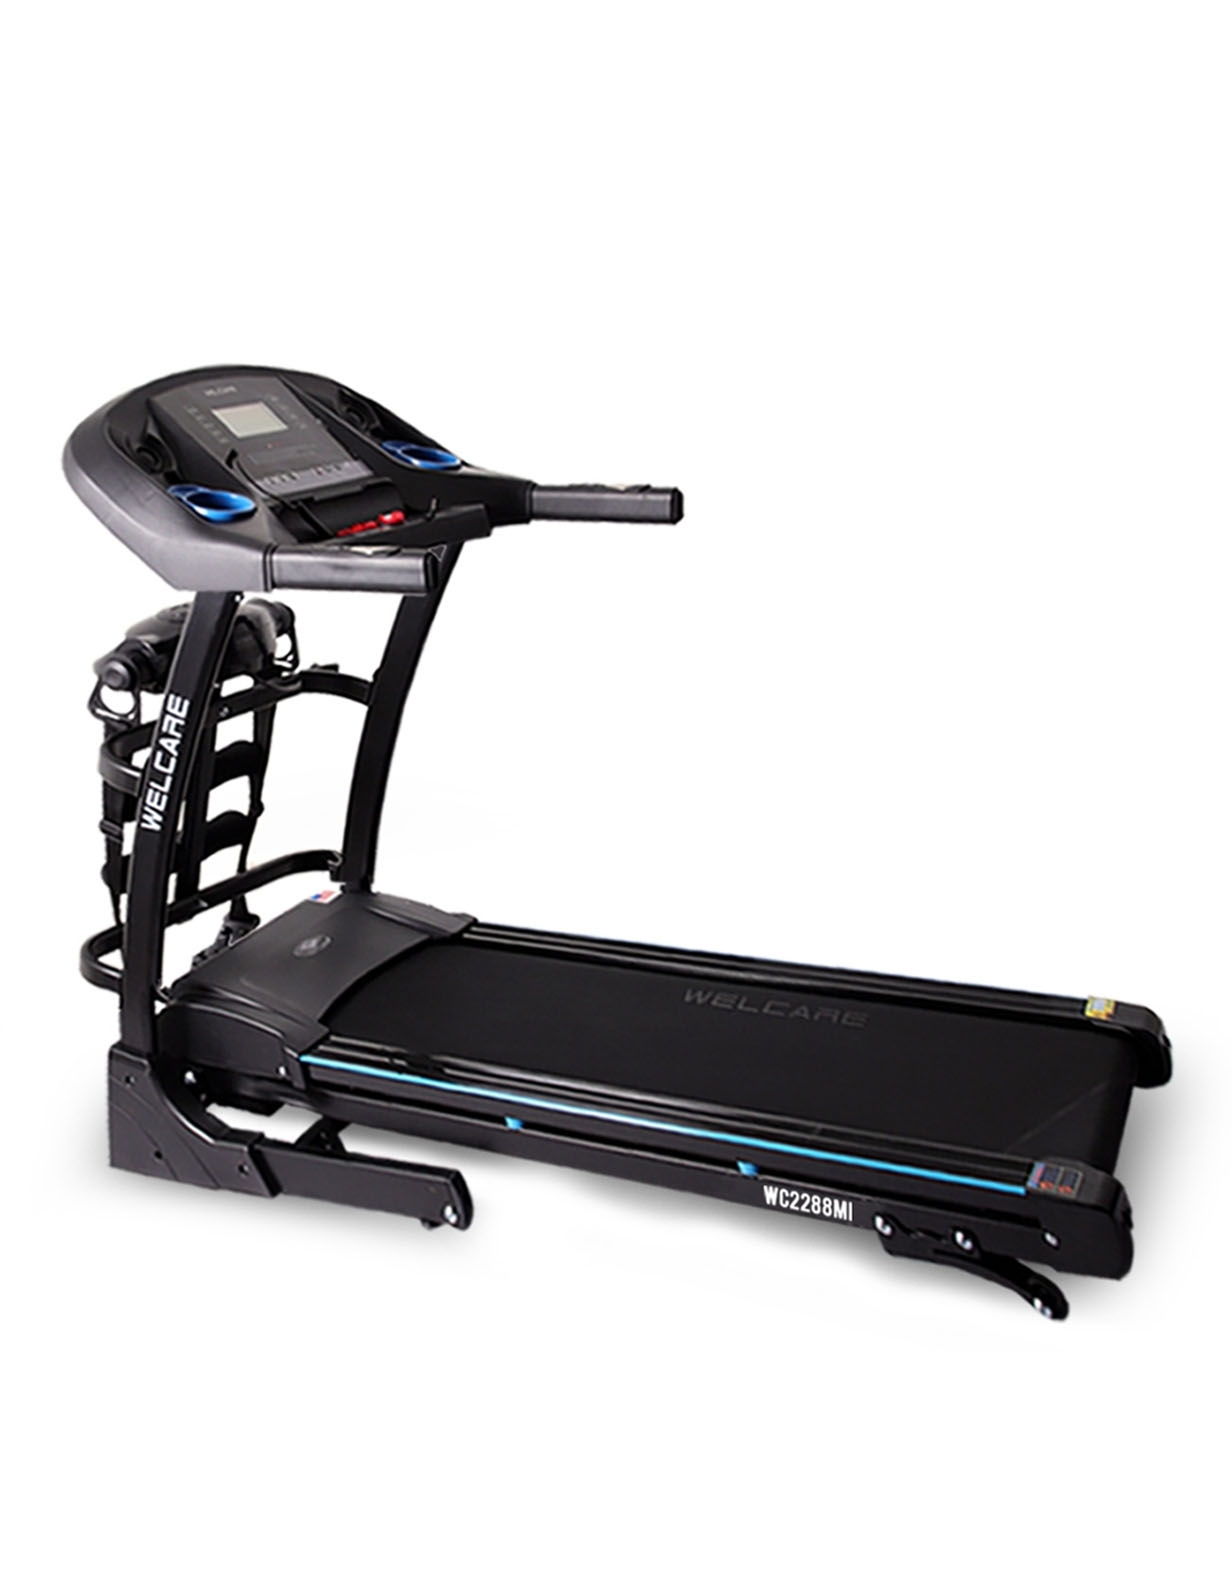 WC 2288MI MOTORIZED TREADMILL